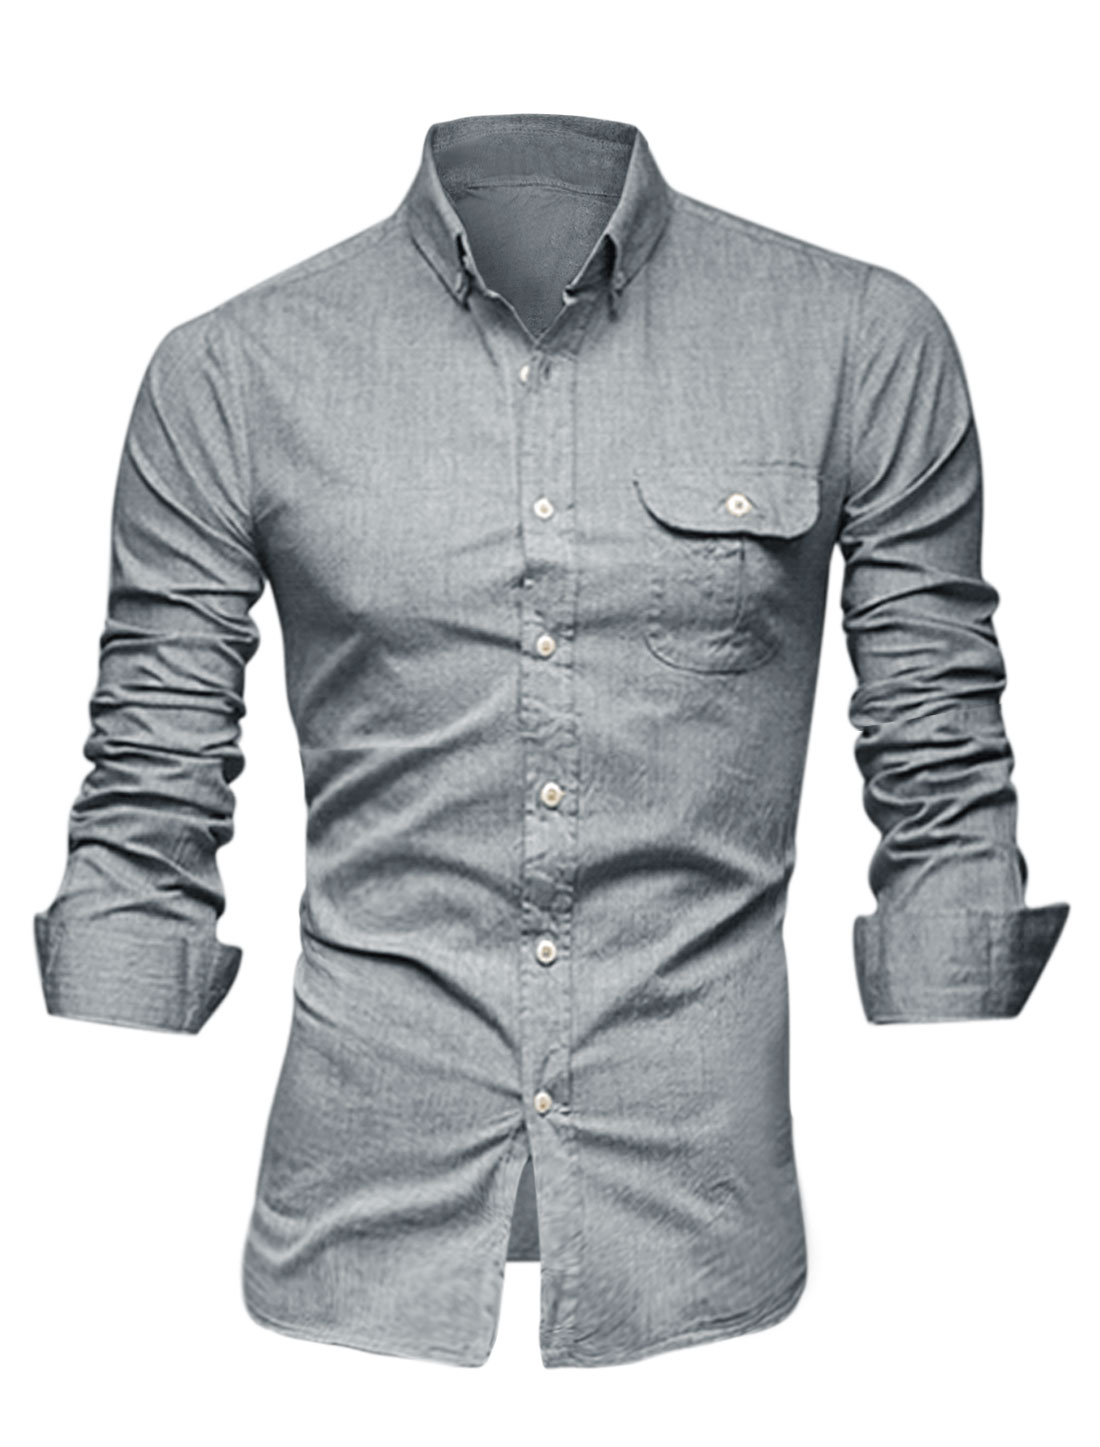 Men Point Collar Button Closure Front One Chest Pocket Casual Shirt Light Gray M